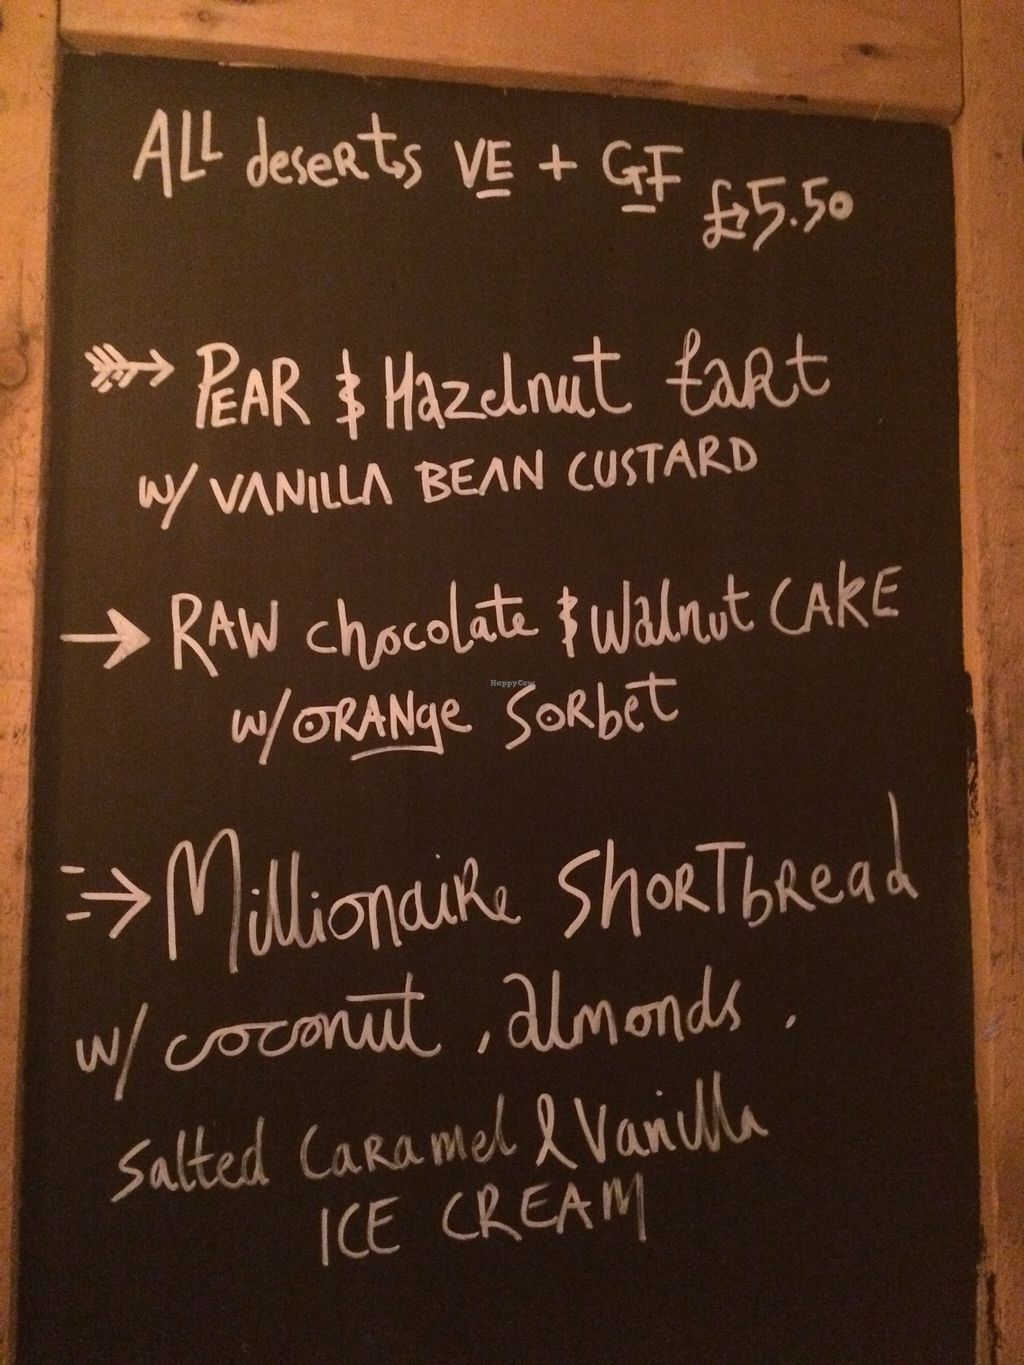 """Photo of Earth and Stars  by <a href=""""/members/profile/Kiwi%20Wannabe"""">Kiwi Wannabe</a> <br/>Dessert menu, all vegan!  The millionaire shortbread was delicious :-) <br/> April 9, 2016  - <a href='/contact/abuse/image/71529/143533'>Report</a>"""